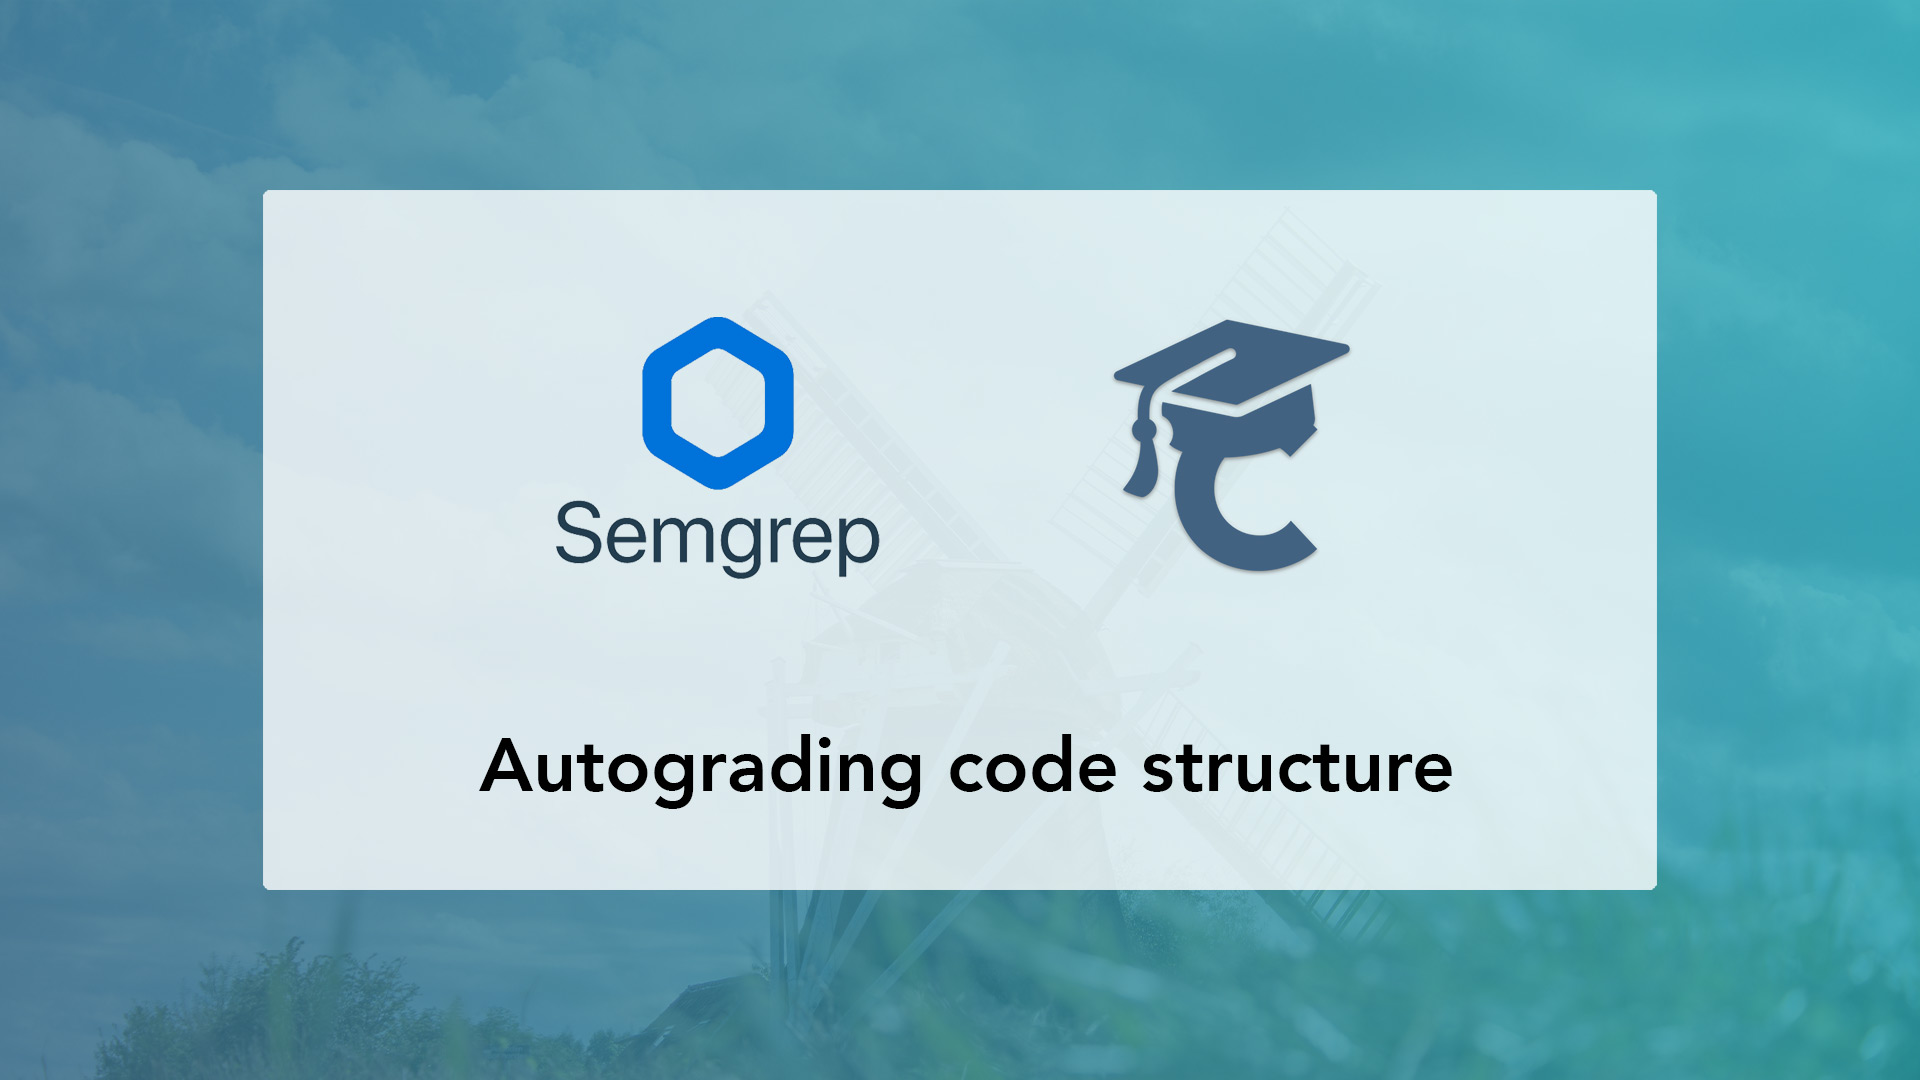 Use semgrep and CodeGrade to autograde structure of code assignments of IT education